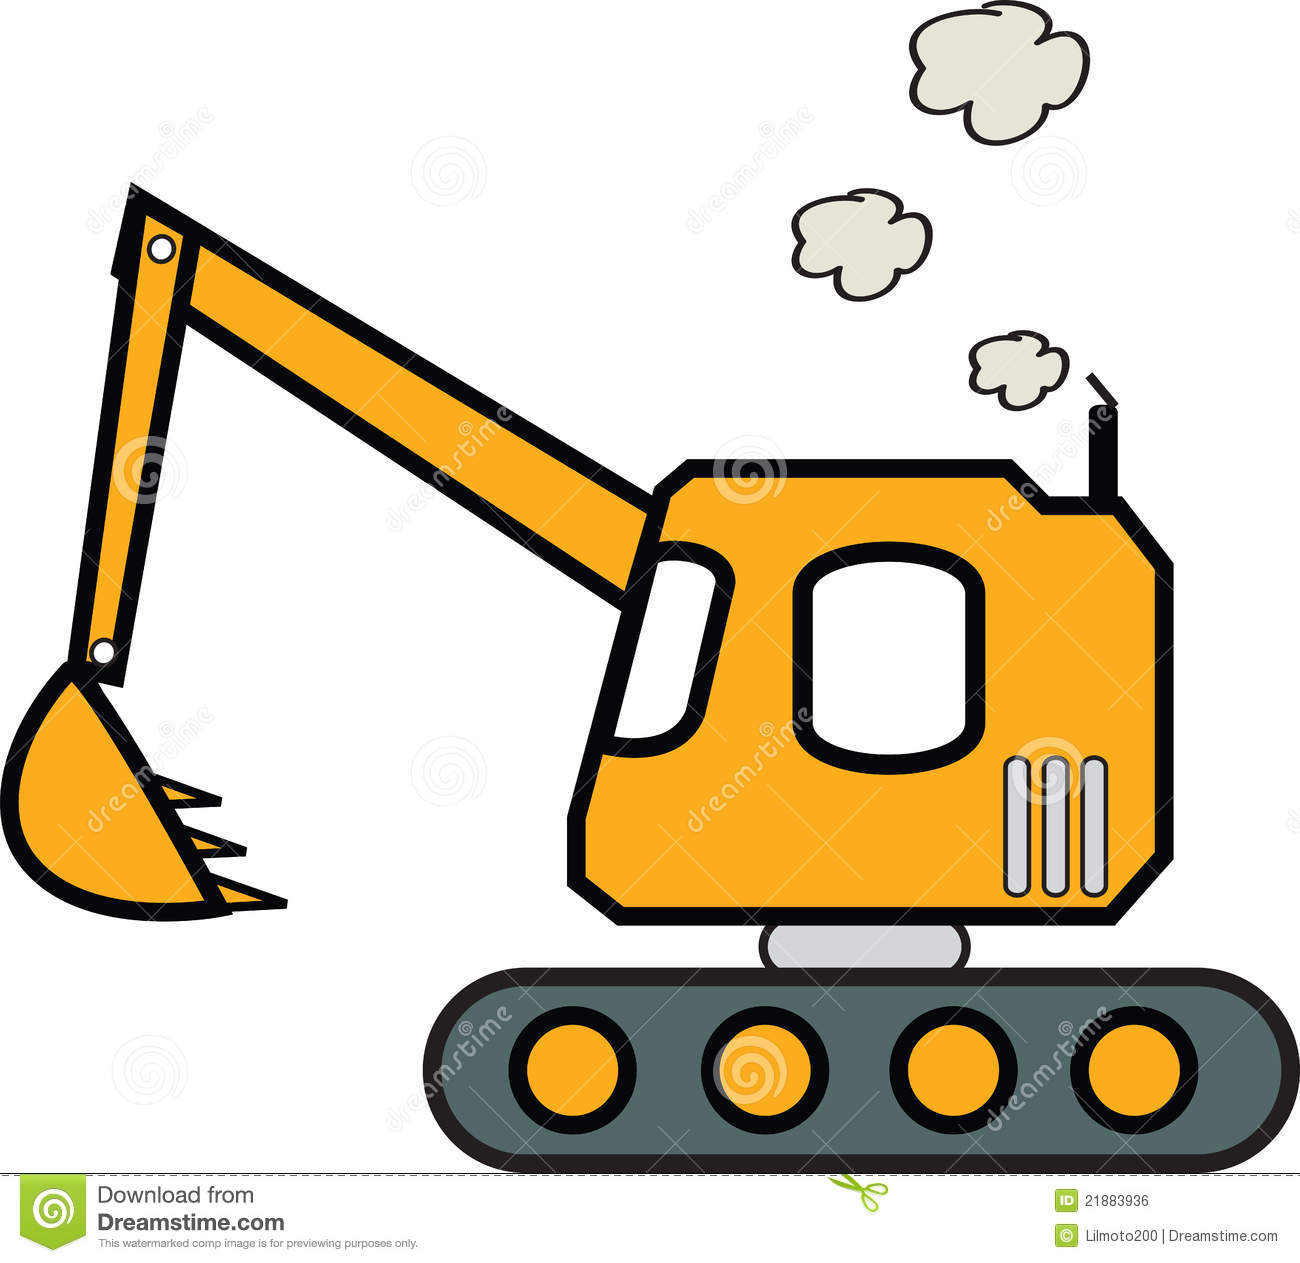 Backhoe clipart construction project. Excavator free download best